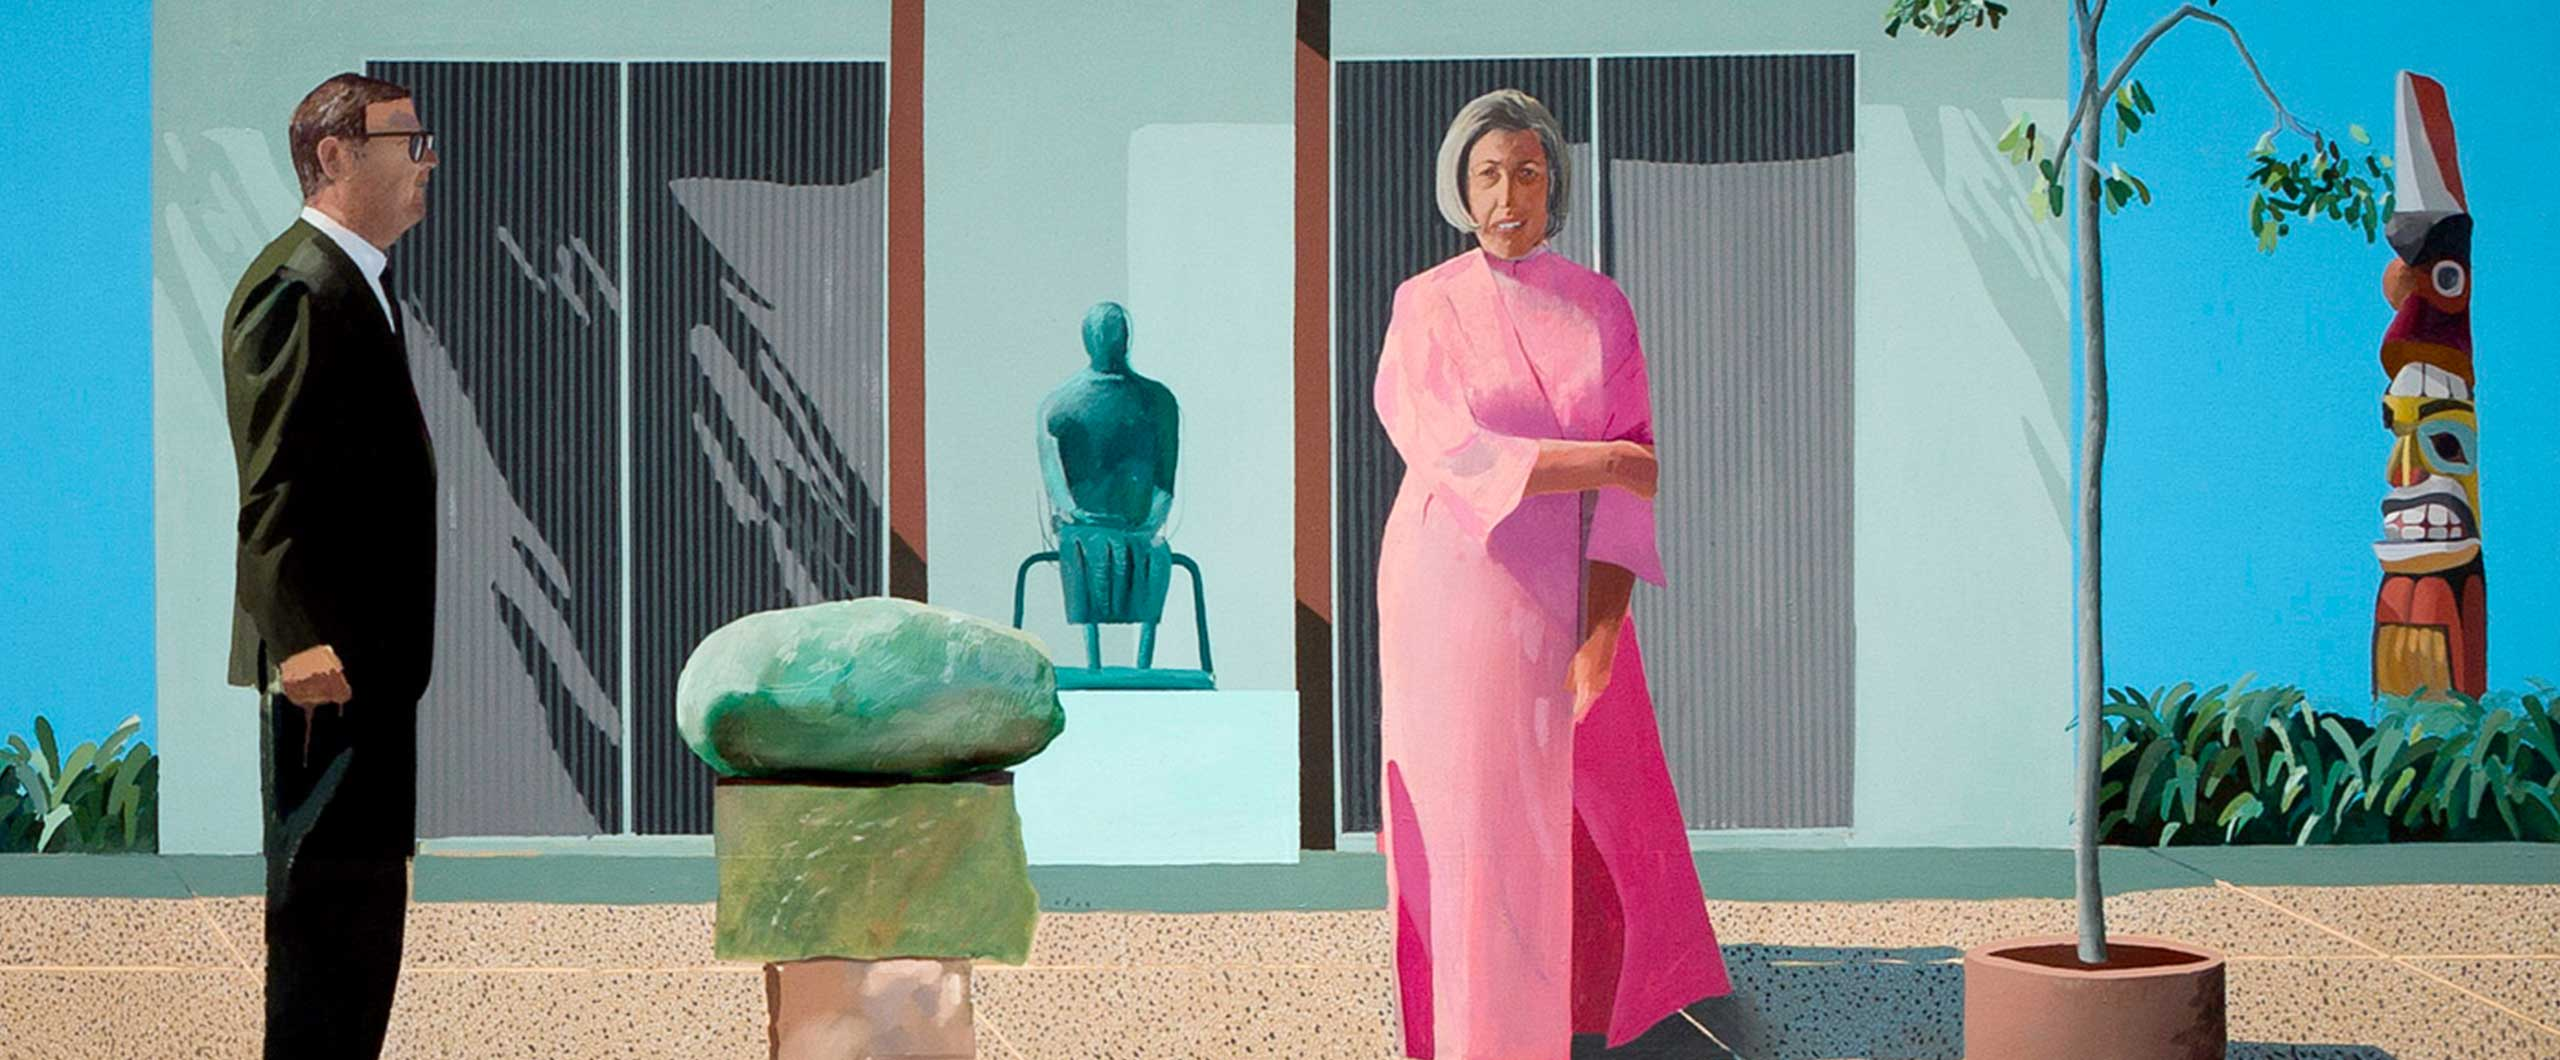 David Hockney, American collectors (Fred & Marcia Weisman), 1968.jpg